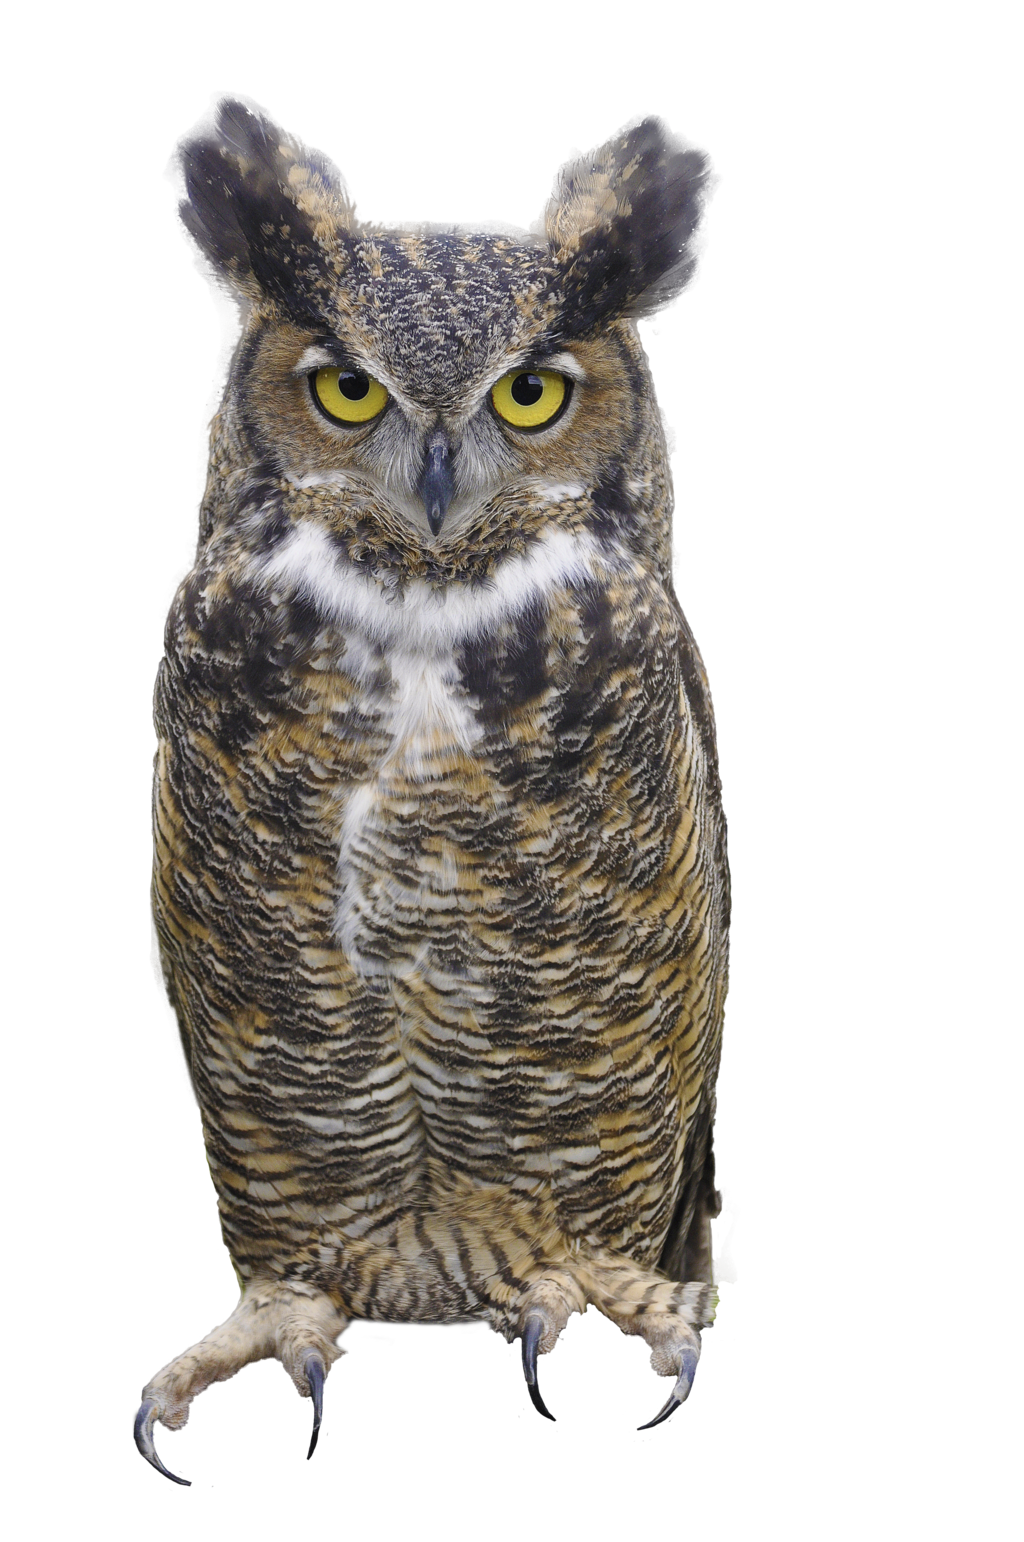 Owl Picture PNG Image - Owl PNG